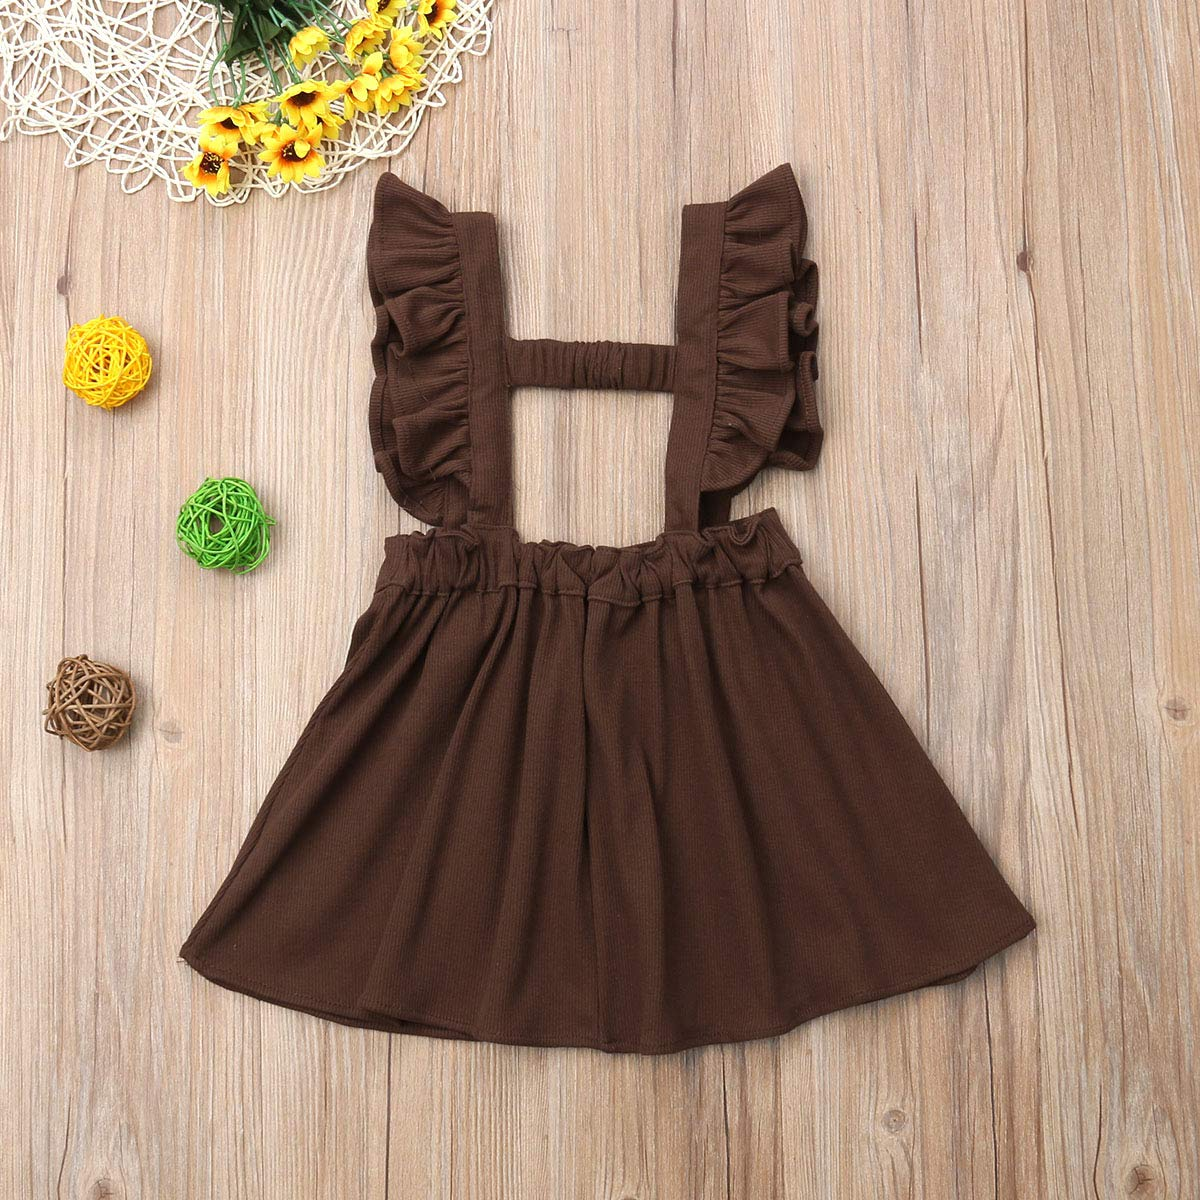 f714805acde Amazon.com  doublebabyjoy Baby Girl One Piece Ruffles Suspender Skirt  Overalls Infant Solid Color Sleeveless Backless Dress Outfit 0-5T  Clothing